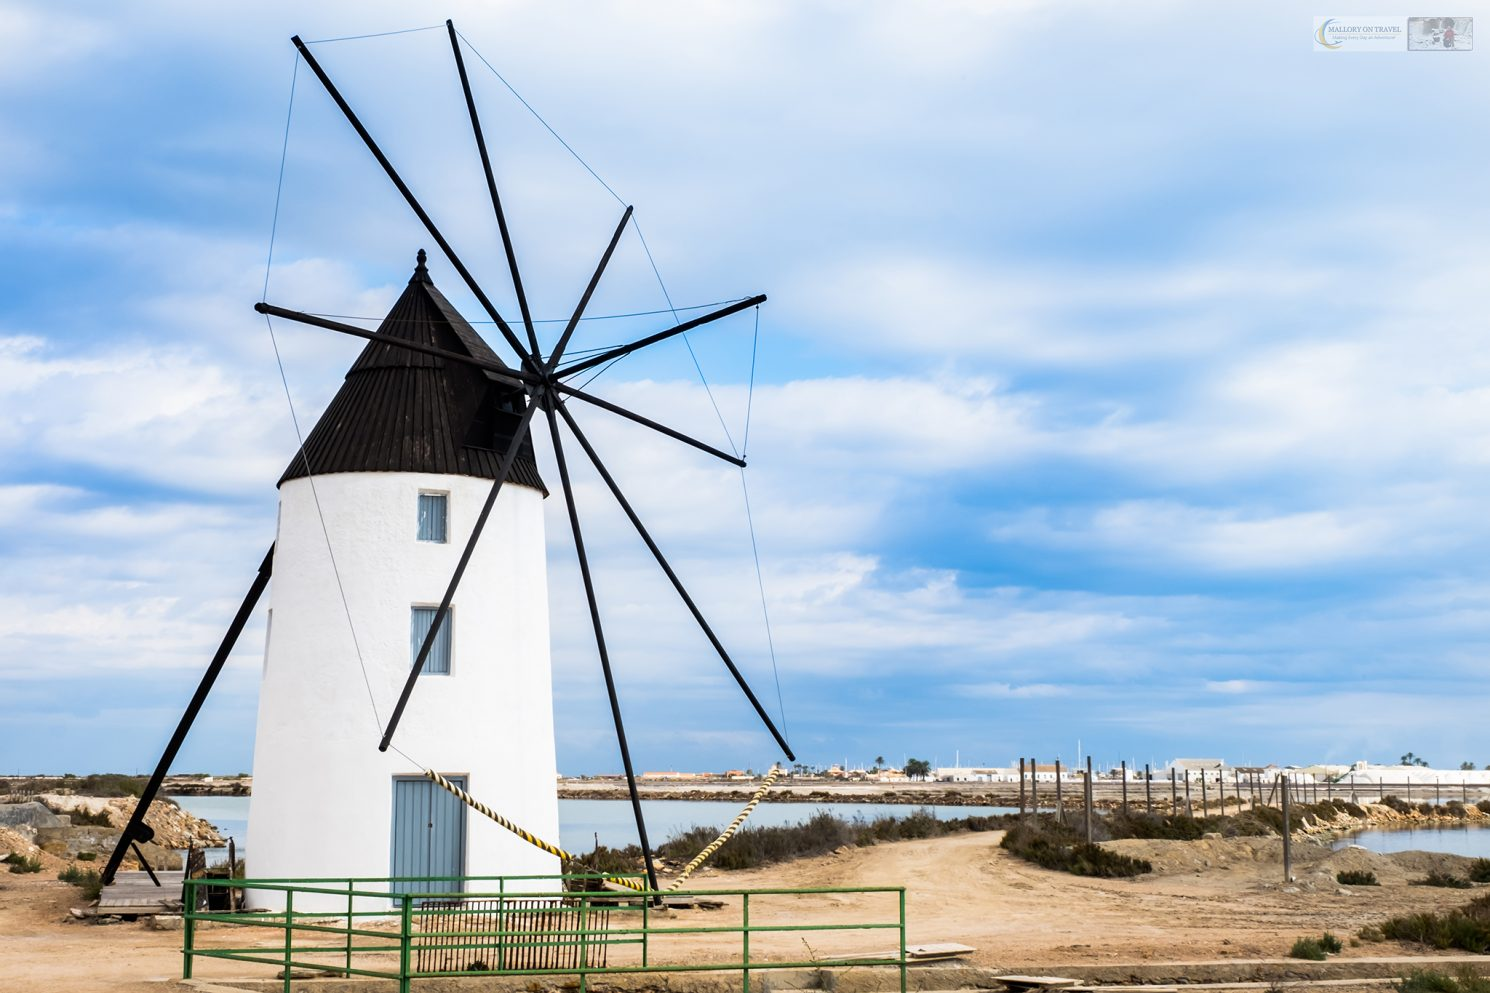 Windmill at the saltflats of San Pedro del Pinatar near La Manga Strip in Murcia, on the Costa Cálida, Spain on Mallory on Travel adventure travel, photography, travel iain-mallory_murcia-001-88